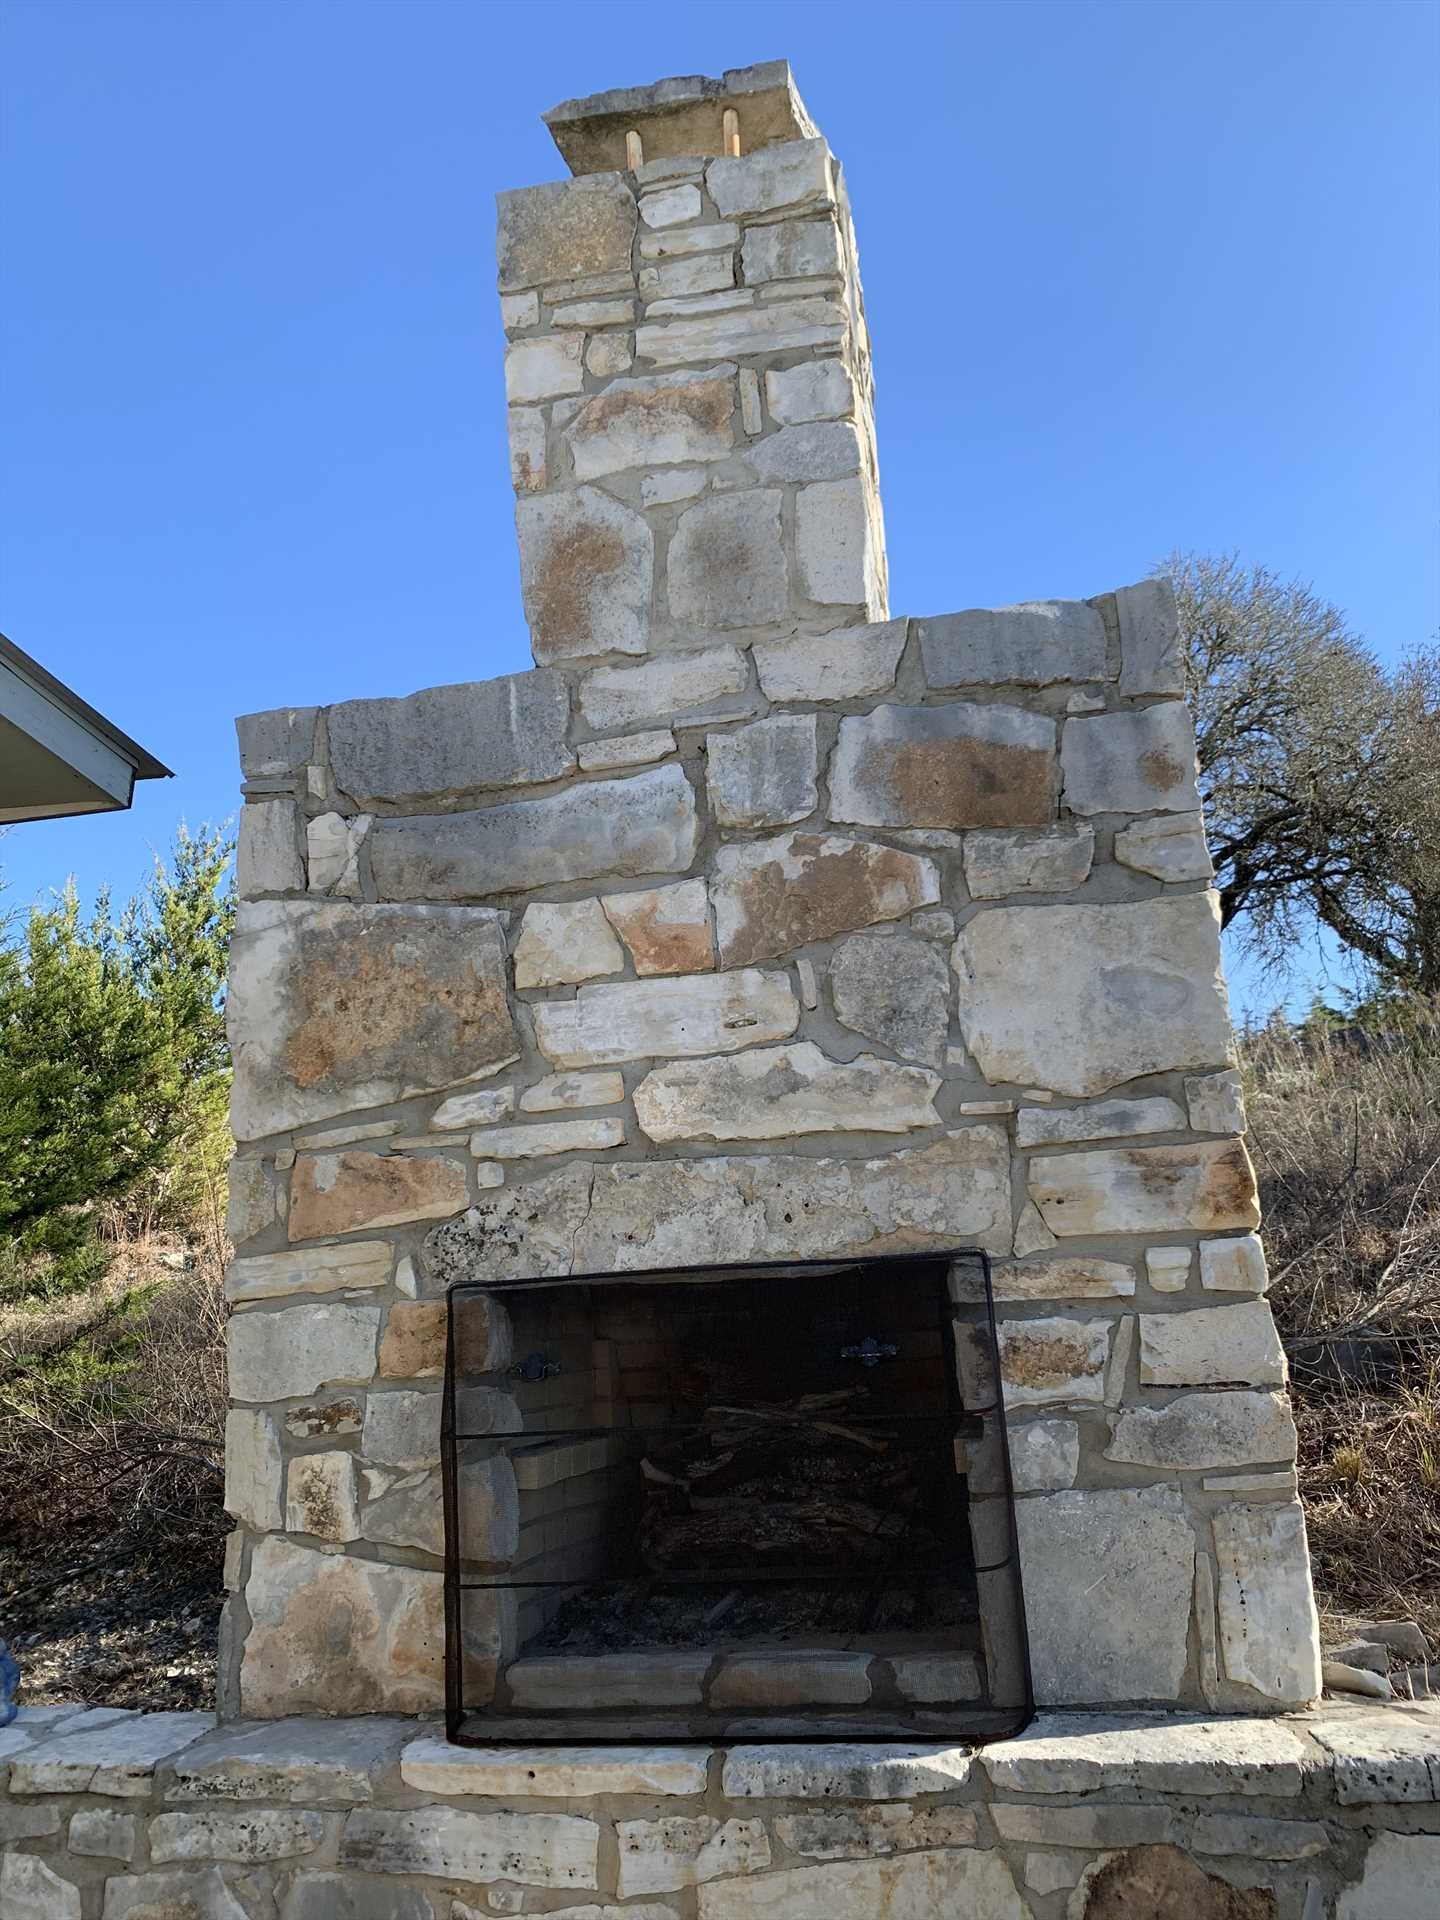 The MASSIVE outdoor fireplace offers a fun gathering spot, and plenty of room for roasted marshmallows and s'mores for everyone!